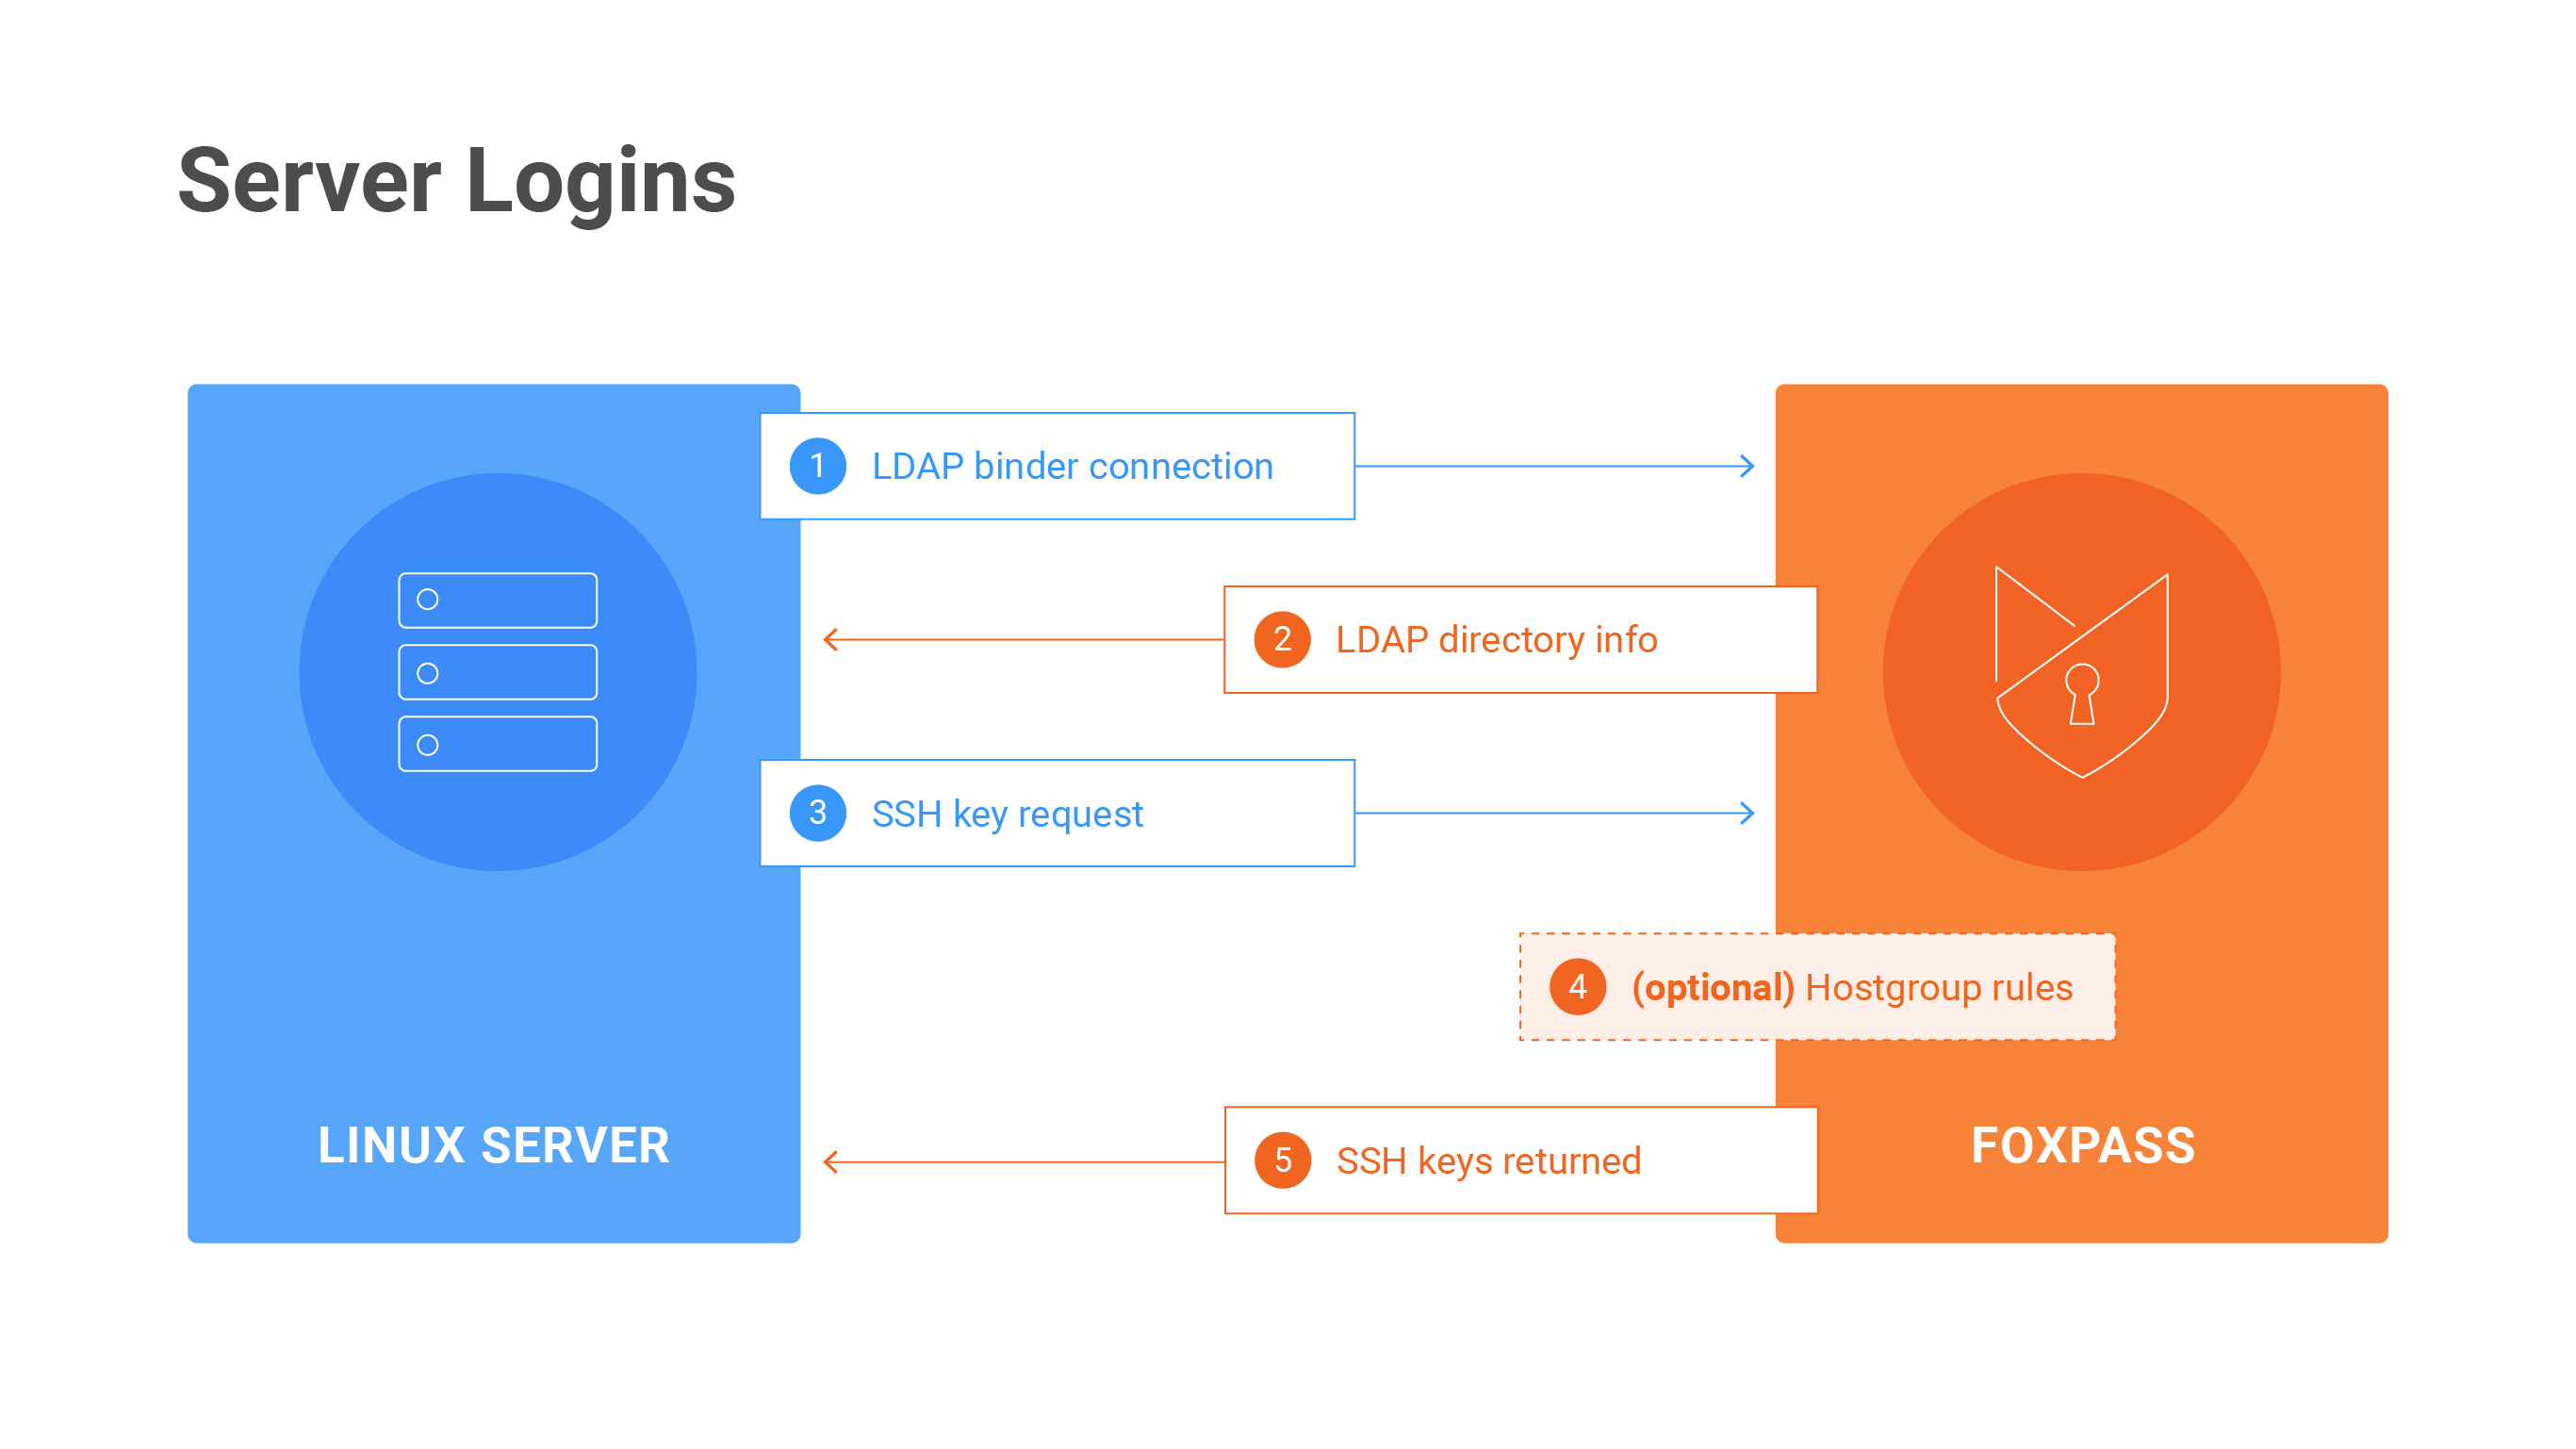 Server Login Diagram